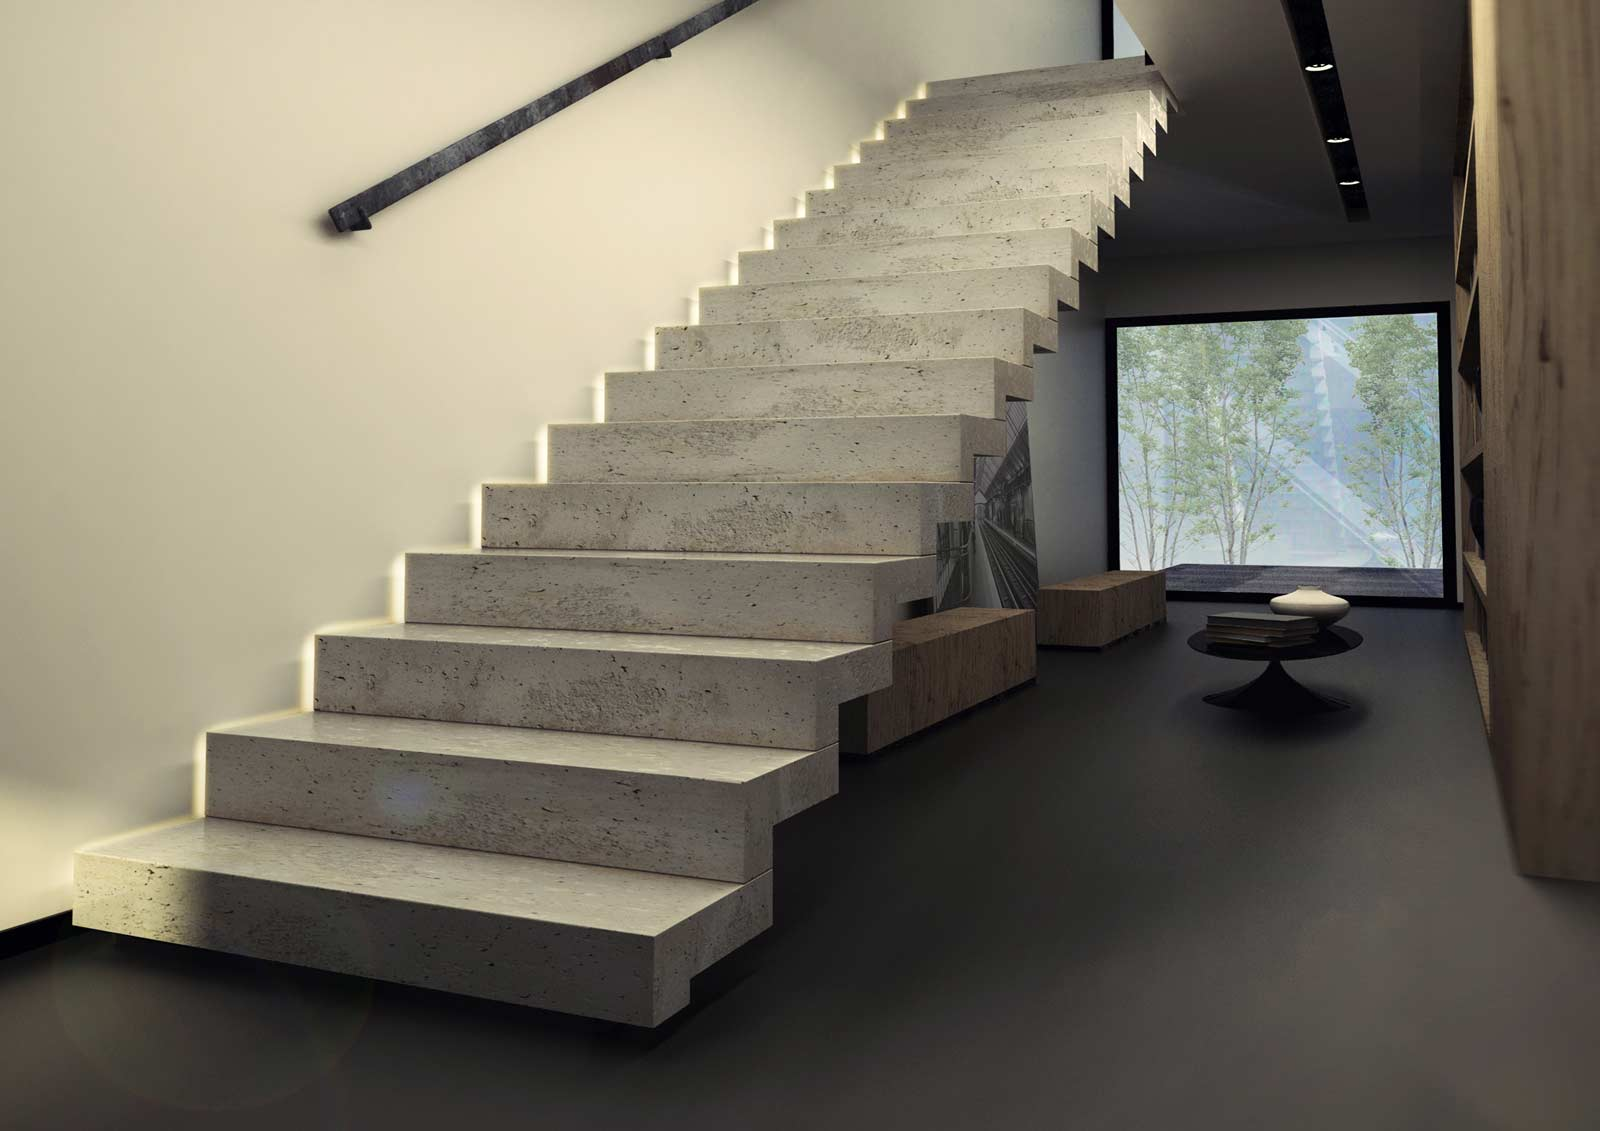 Le top 10 des escaliers droits design le blog de loftboutik - Escalier beton design ...